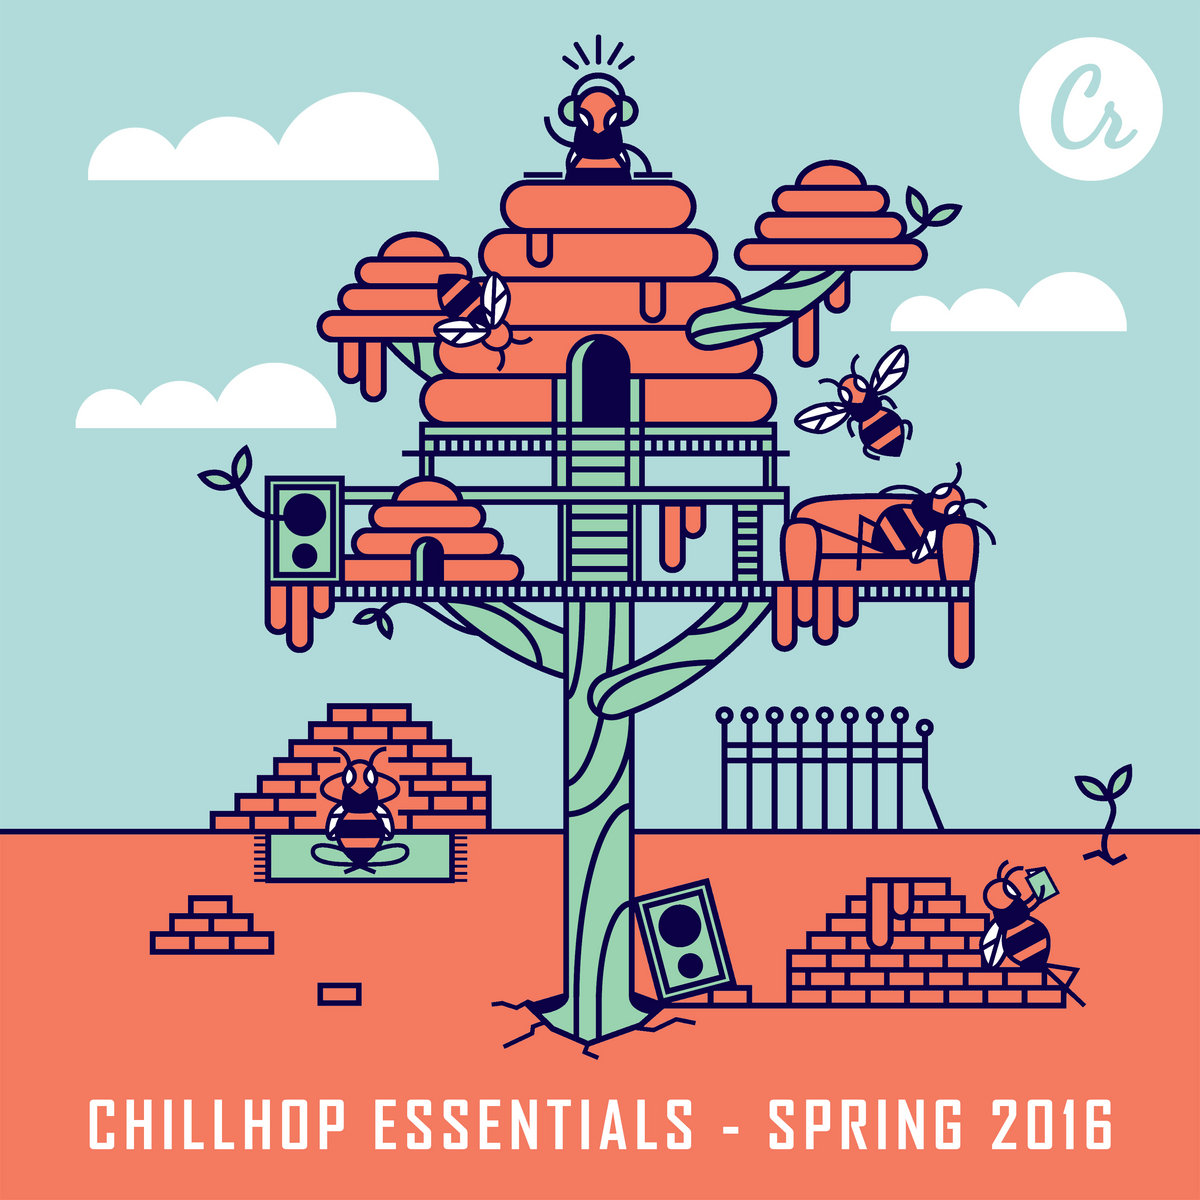 VA - Chillhop Essentials - Spring 2016 (2016)